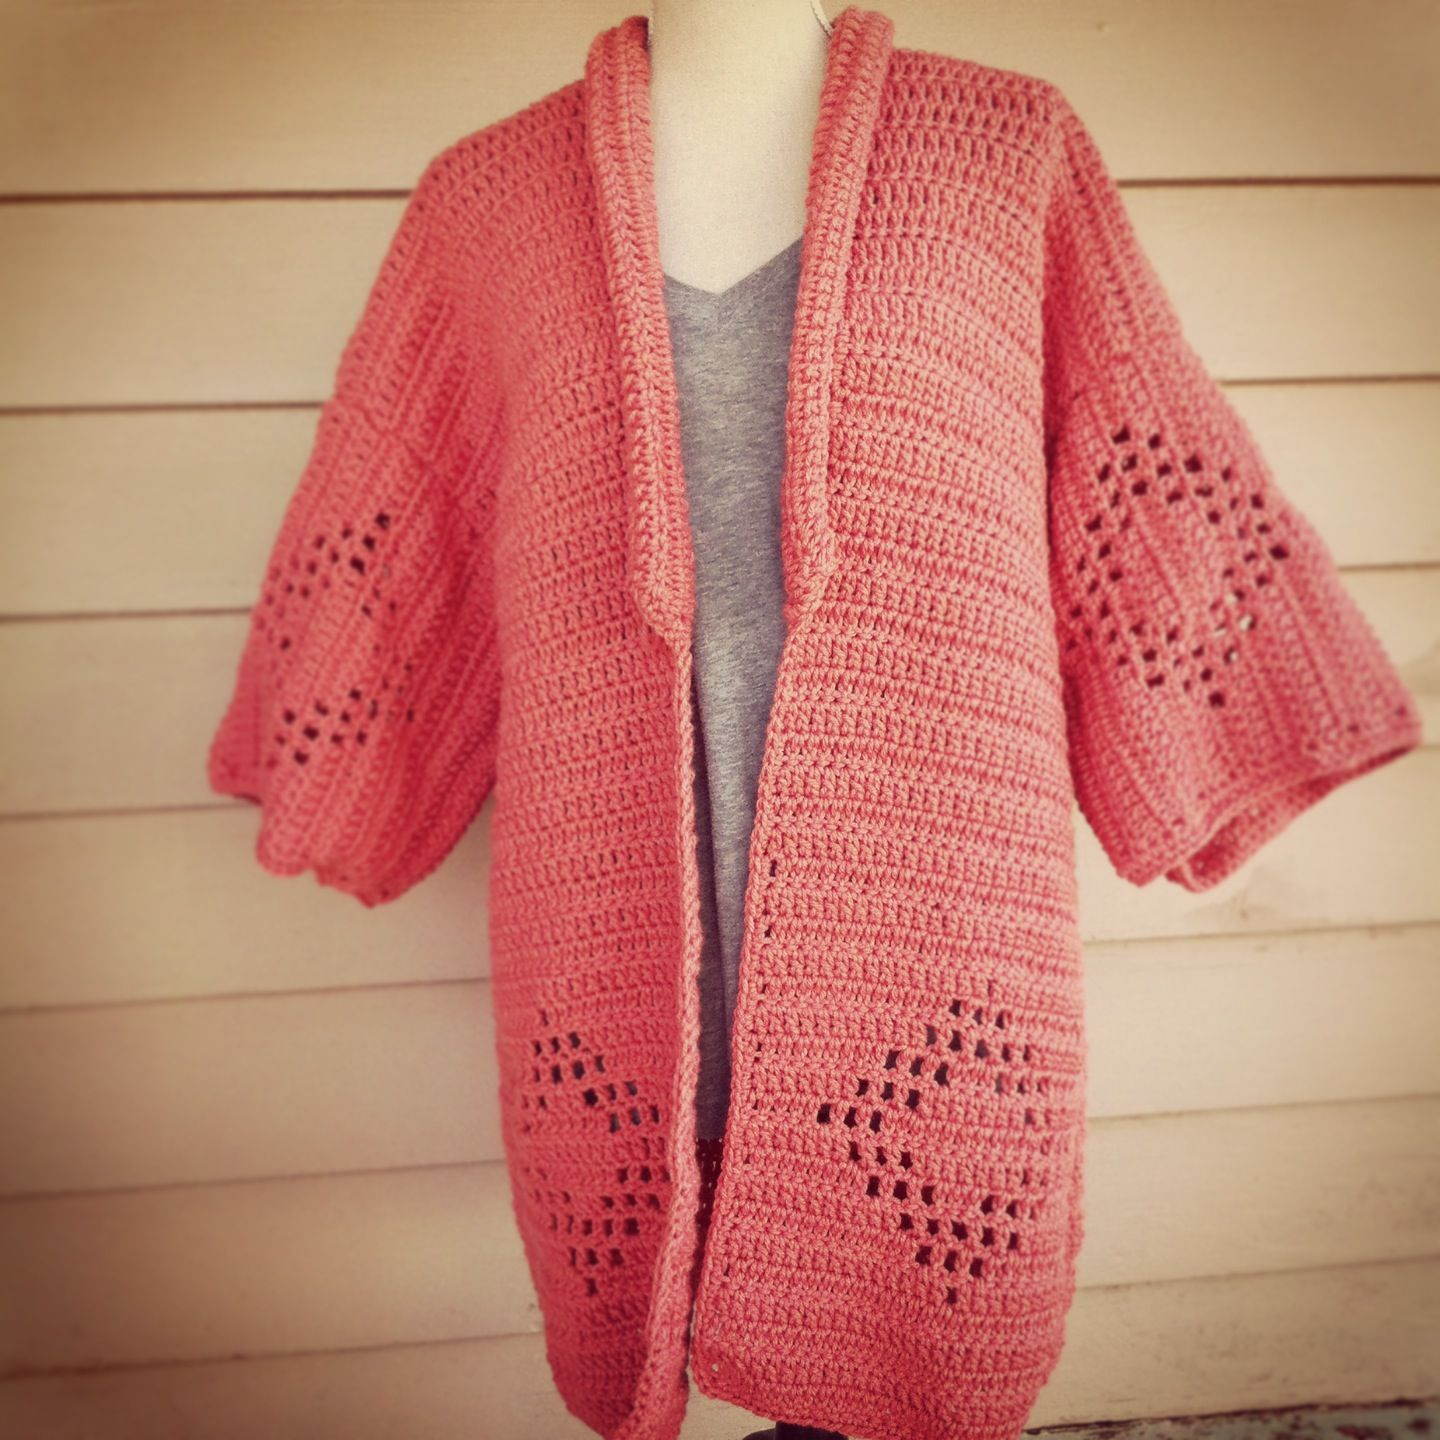 Cardigan by Oikos Handmade  Pattern by Sans Limites Crochet